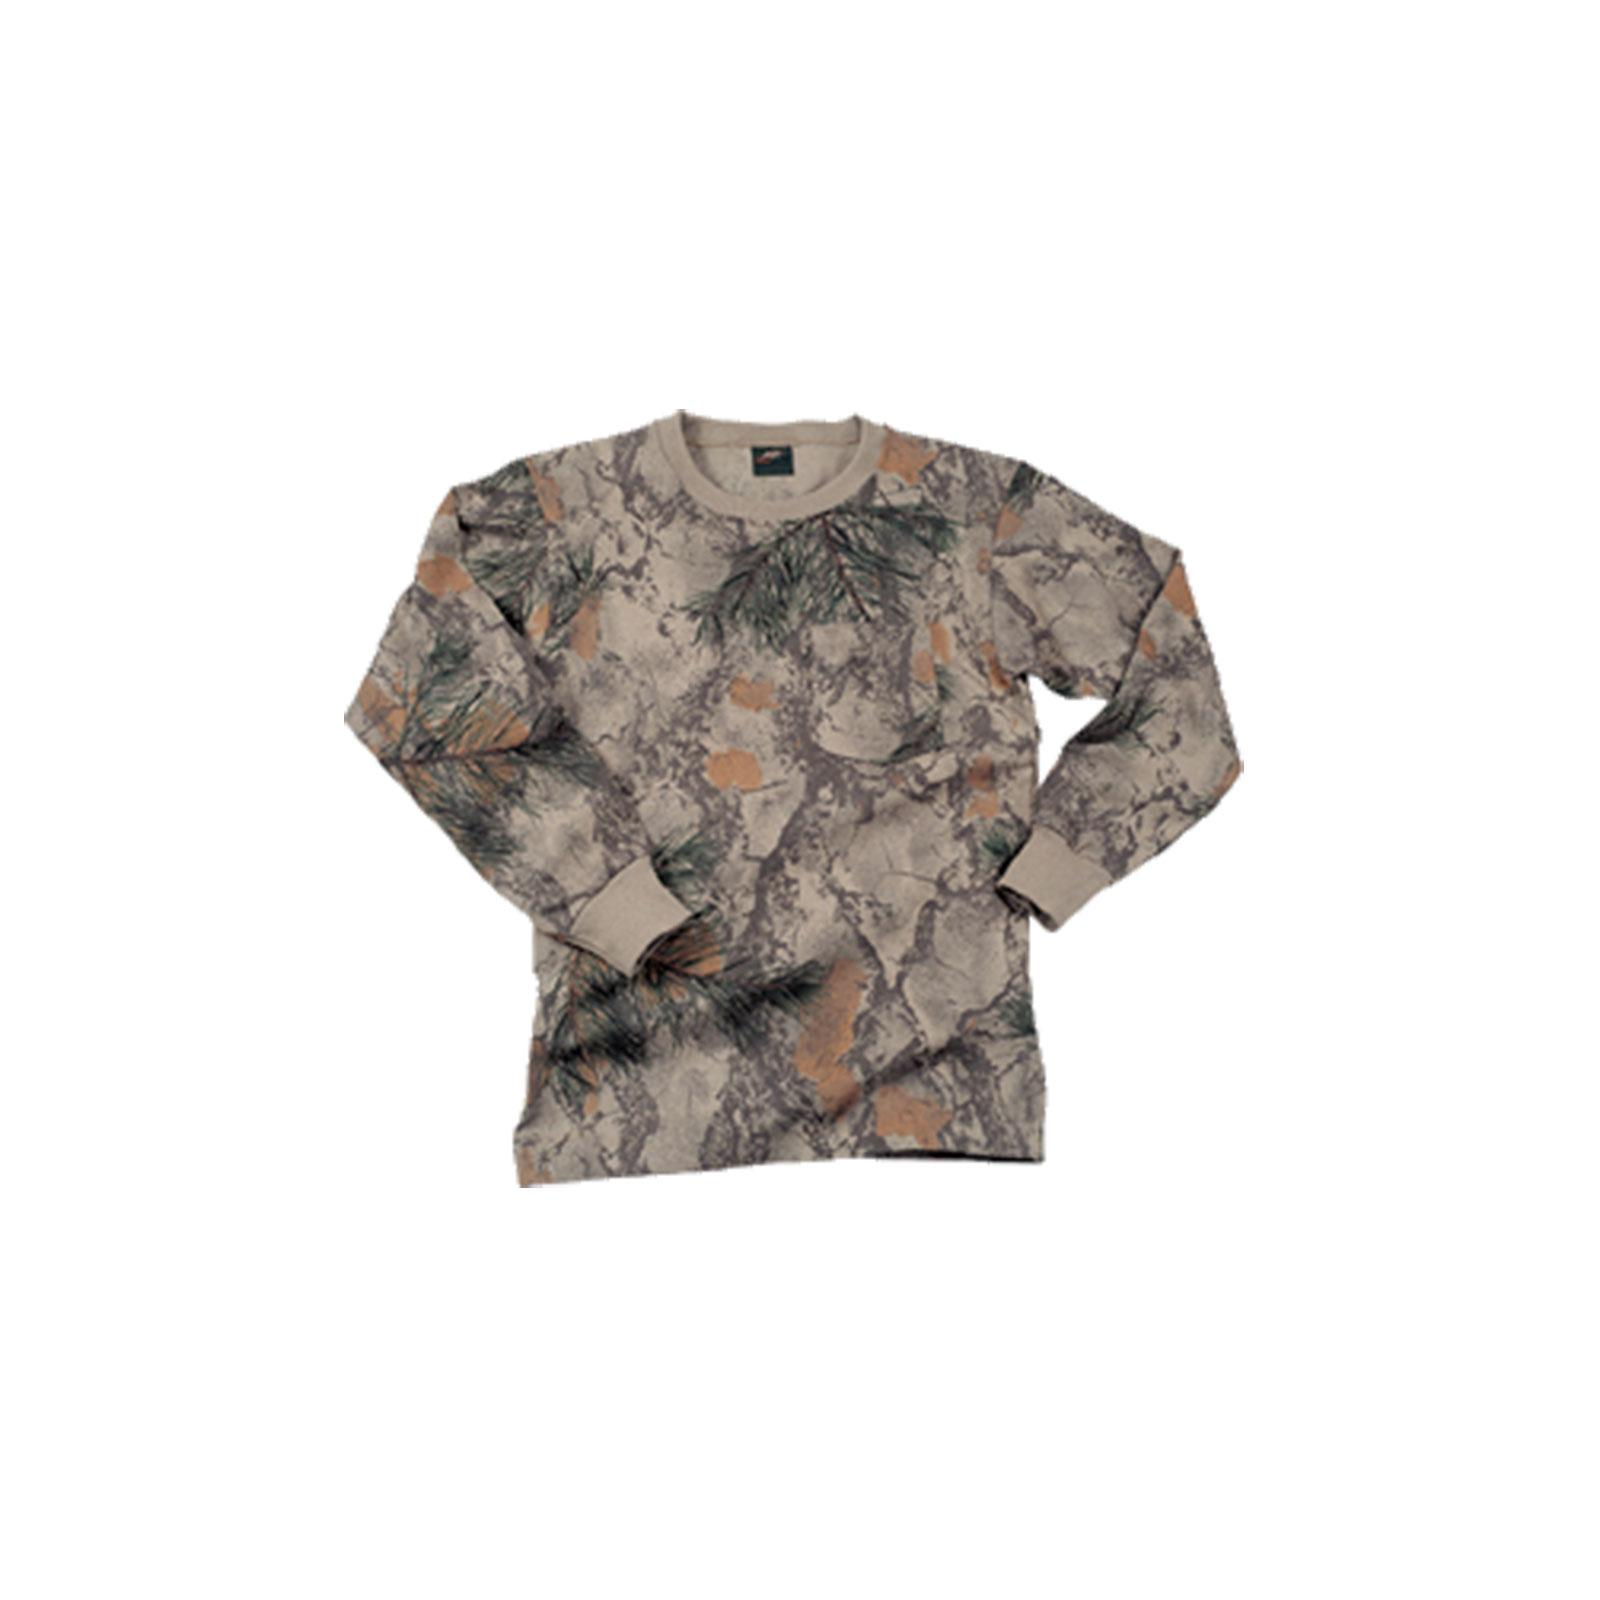 Natural Gear Long Sleeve Tshirt Natural Camo, 112 by Natural Gear